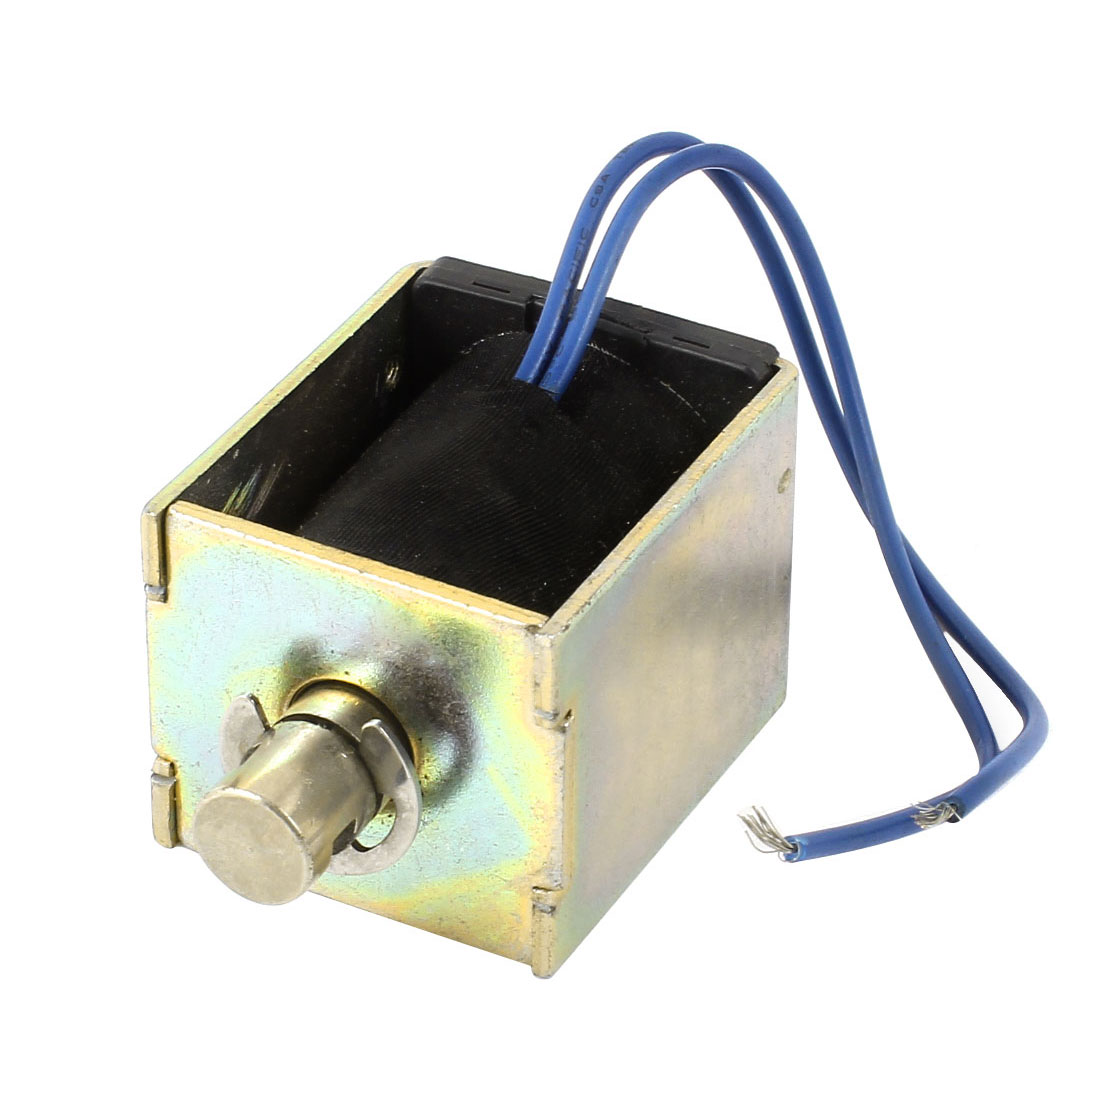 24V 0.68A 10mm 736g 16.45W Push Type Open Frame DC Solenoid Electromagnet Actuator